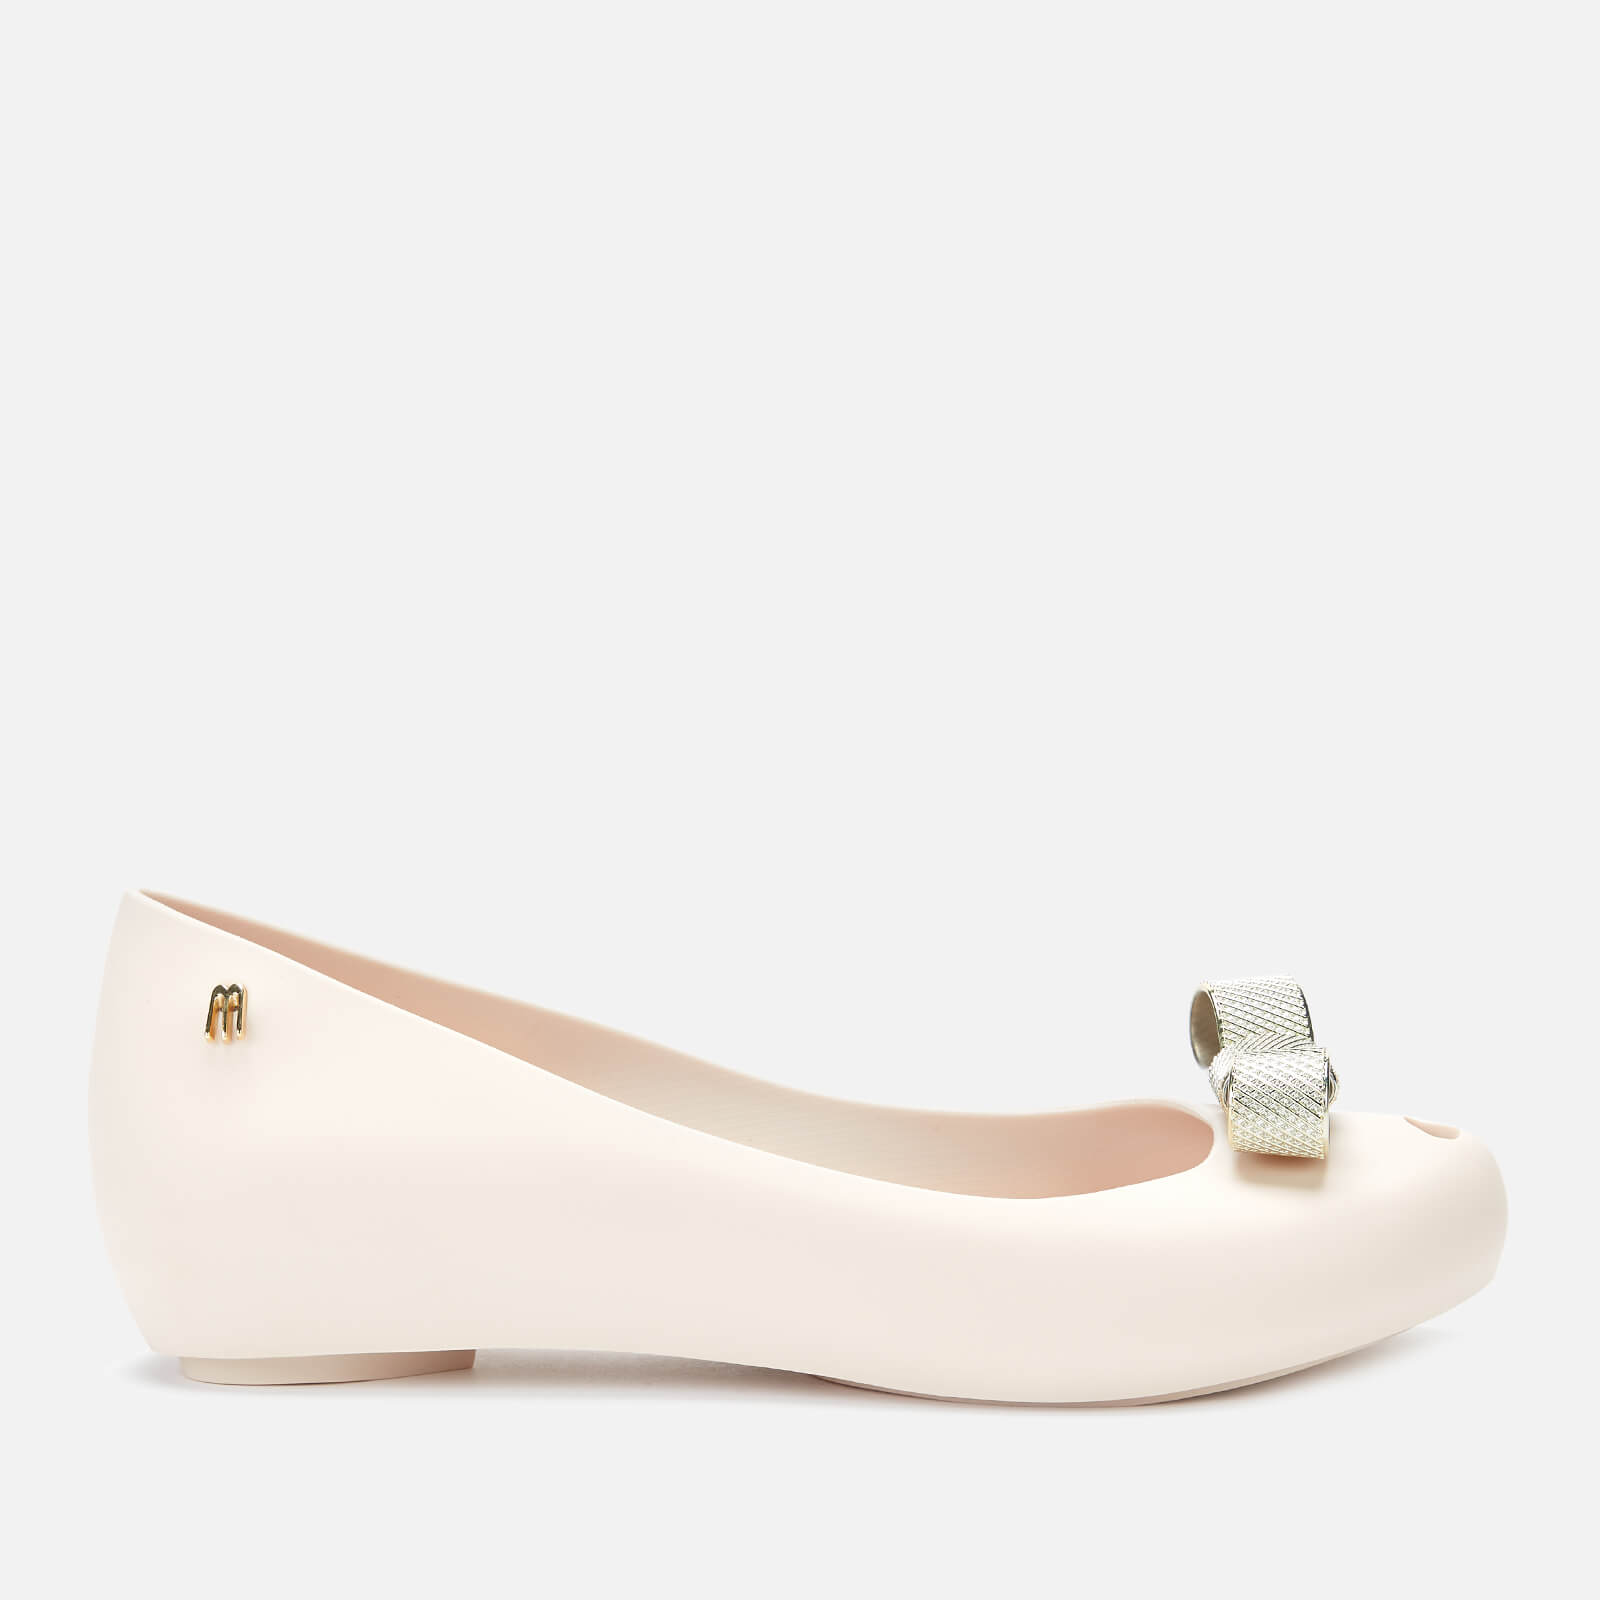 Melissa Women's Ultragirl Chrome Tie Ballet Flats - Ivory - UK 4 - White